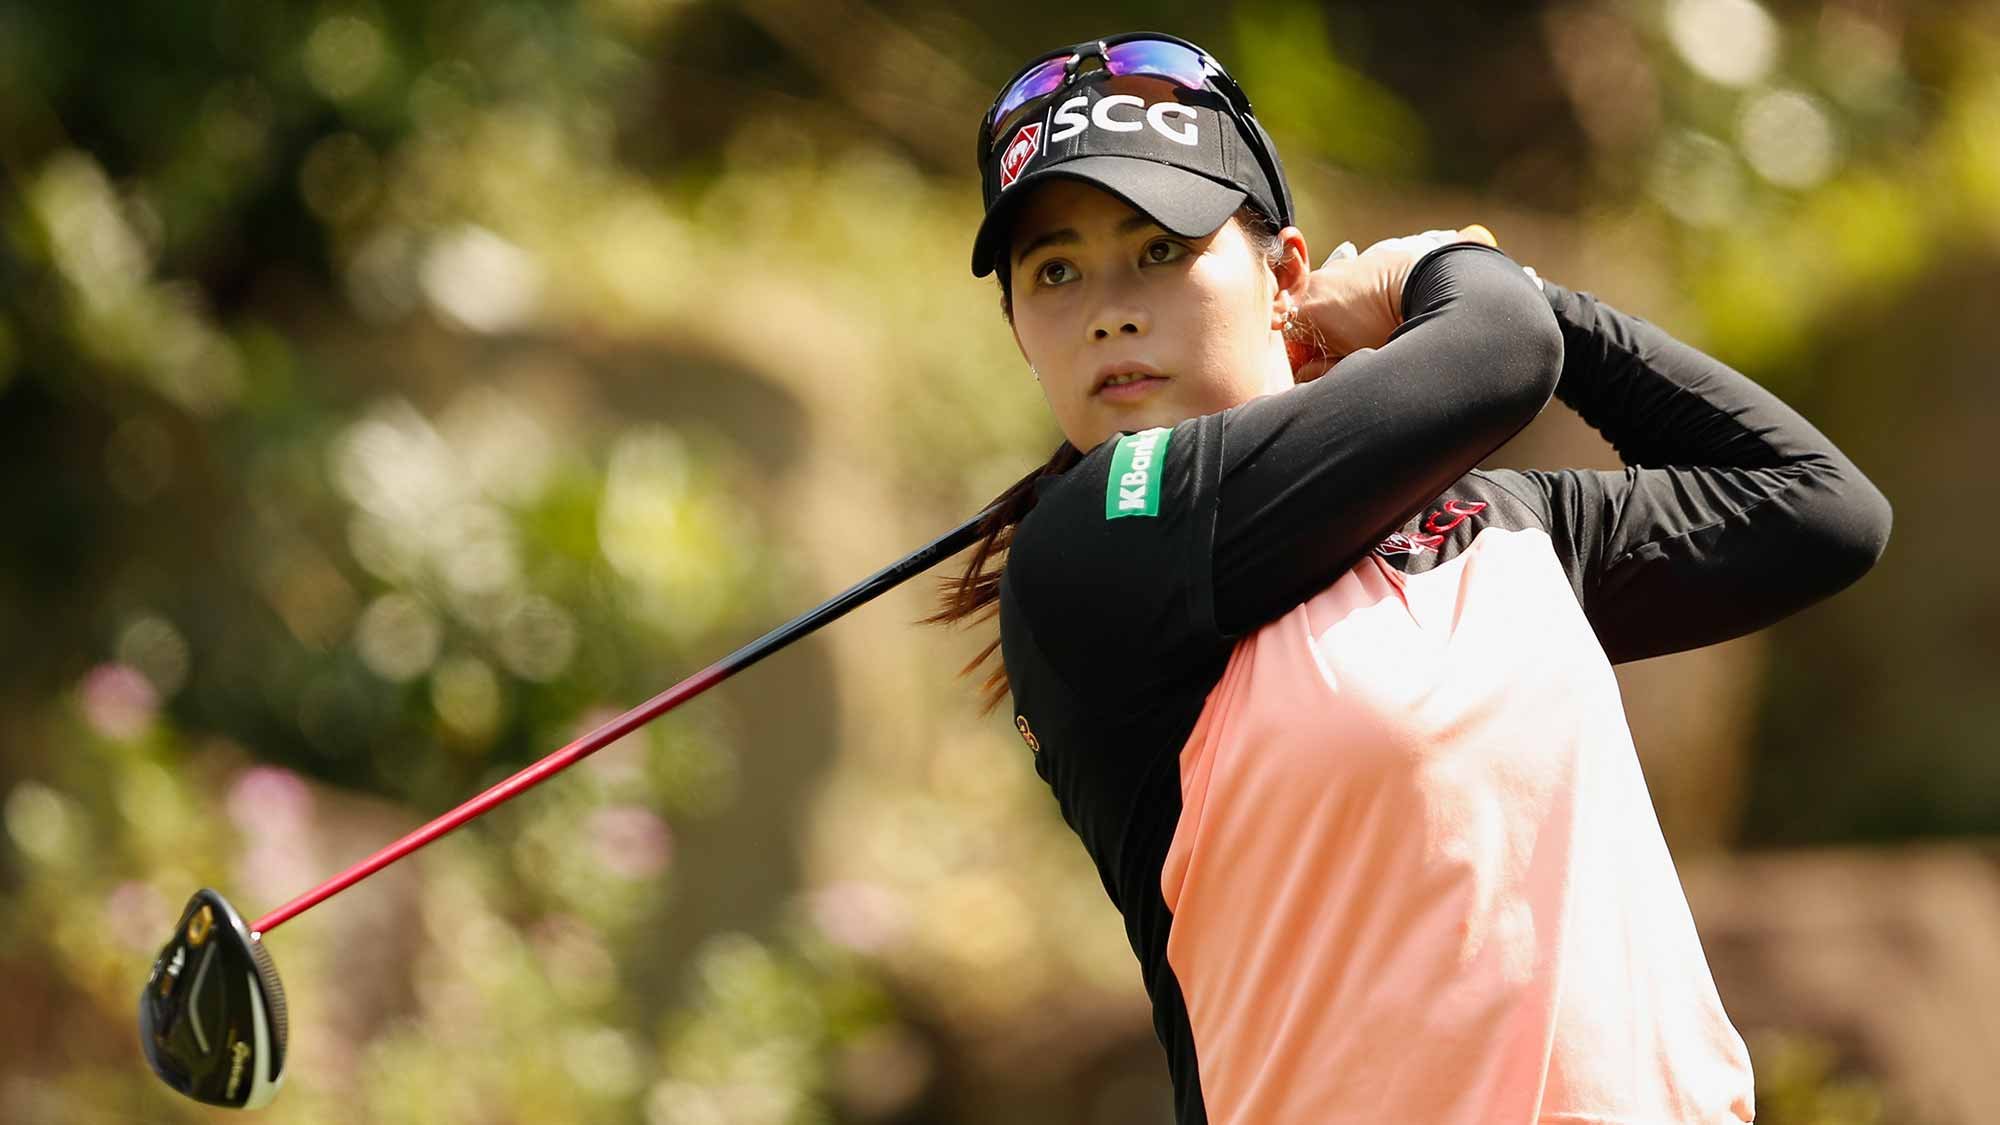 Moriya Jutanugarn of Thailand plays his tee shot at hole # 2 during the first round of the Swinging Skirts LPGA Taiwan Championship at Ta Shee Golf & Country Club on October 25, 2018 in Taoyuan, Chinese Taipei